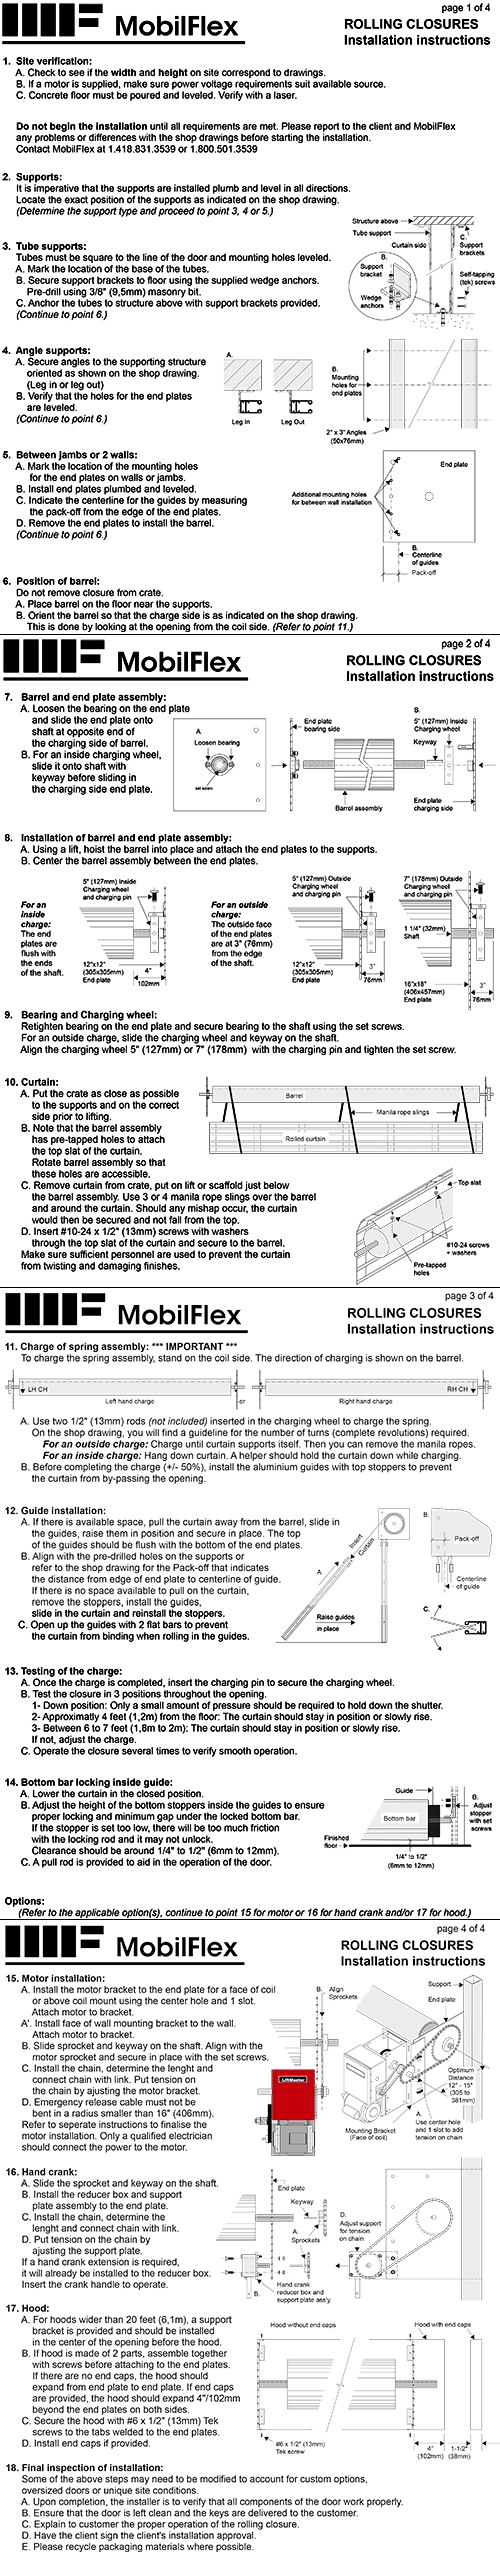 MobilFlex inc. - Installation instructions